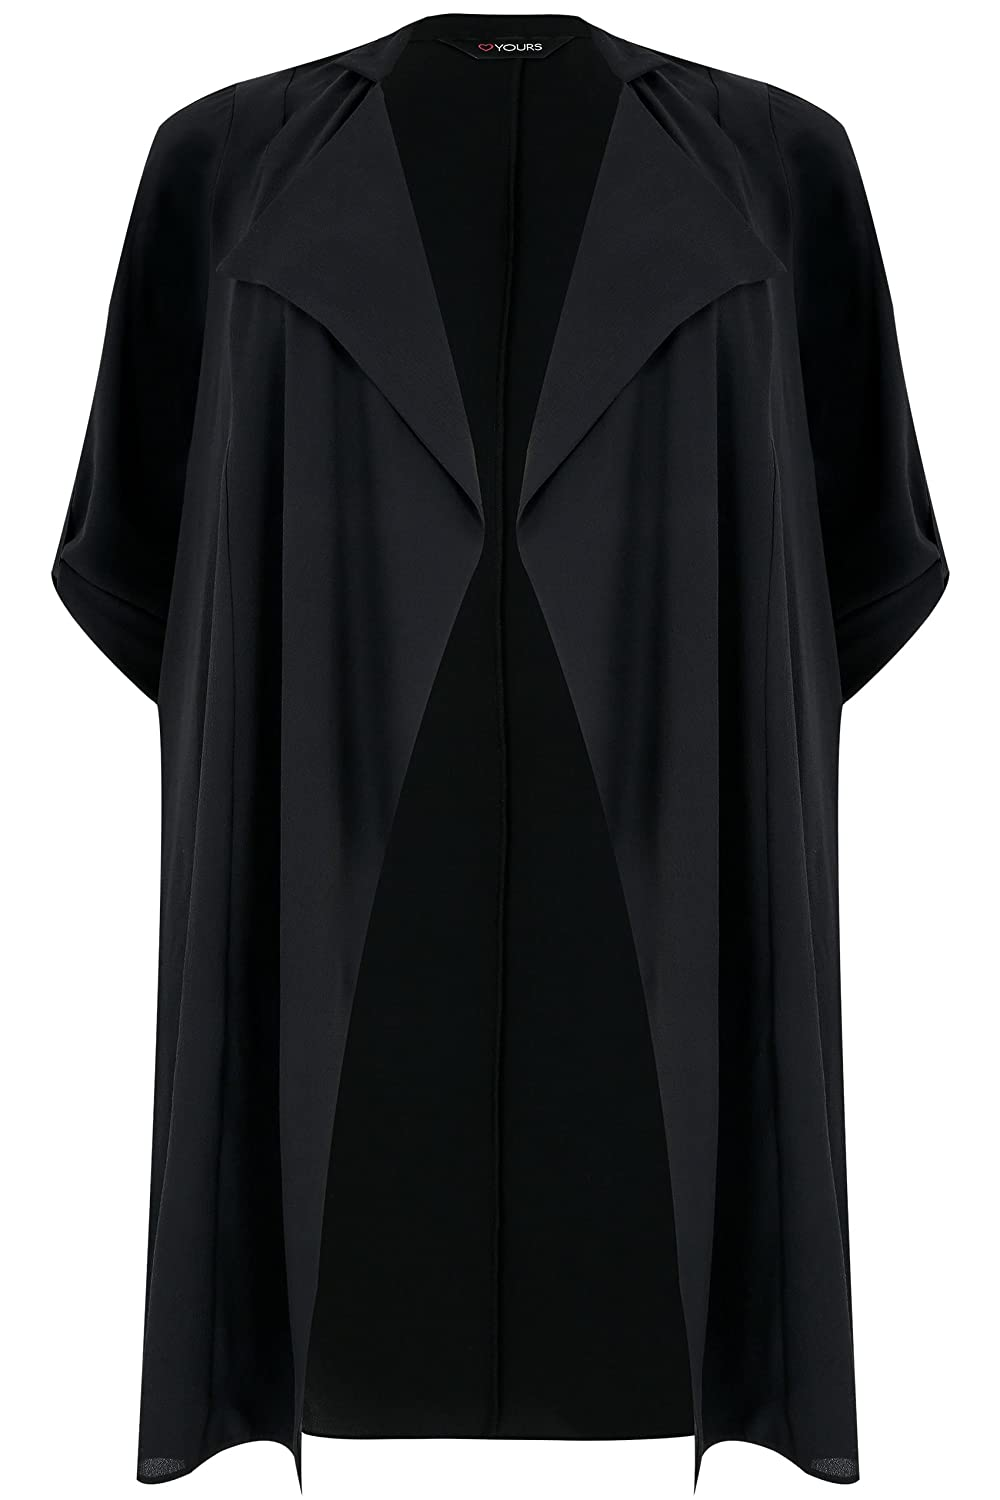 Yours Clothing Women's Plus Size Lightweight Duster Jacket with Waterfall Front